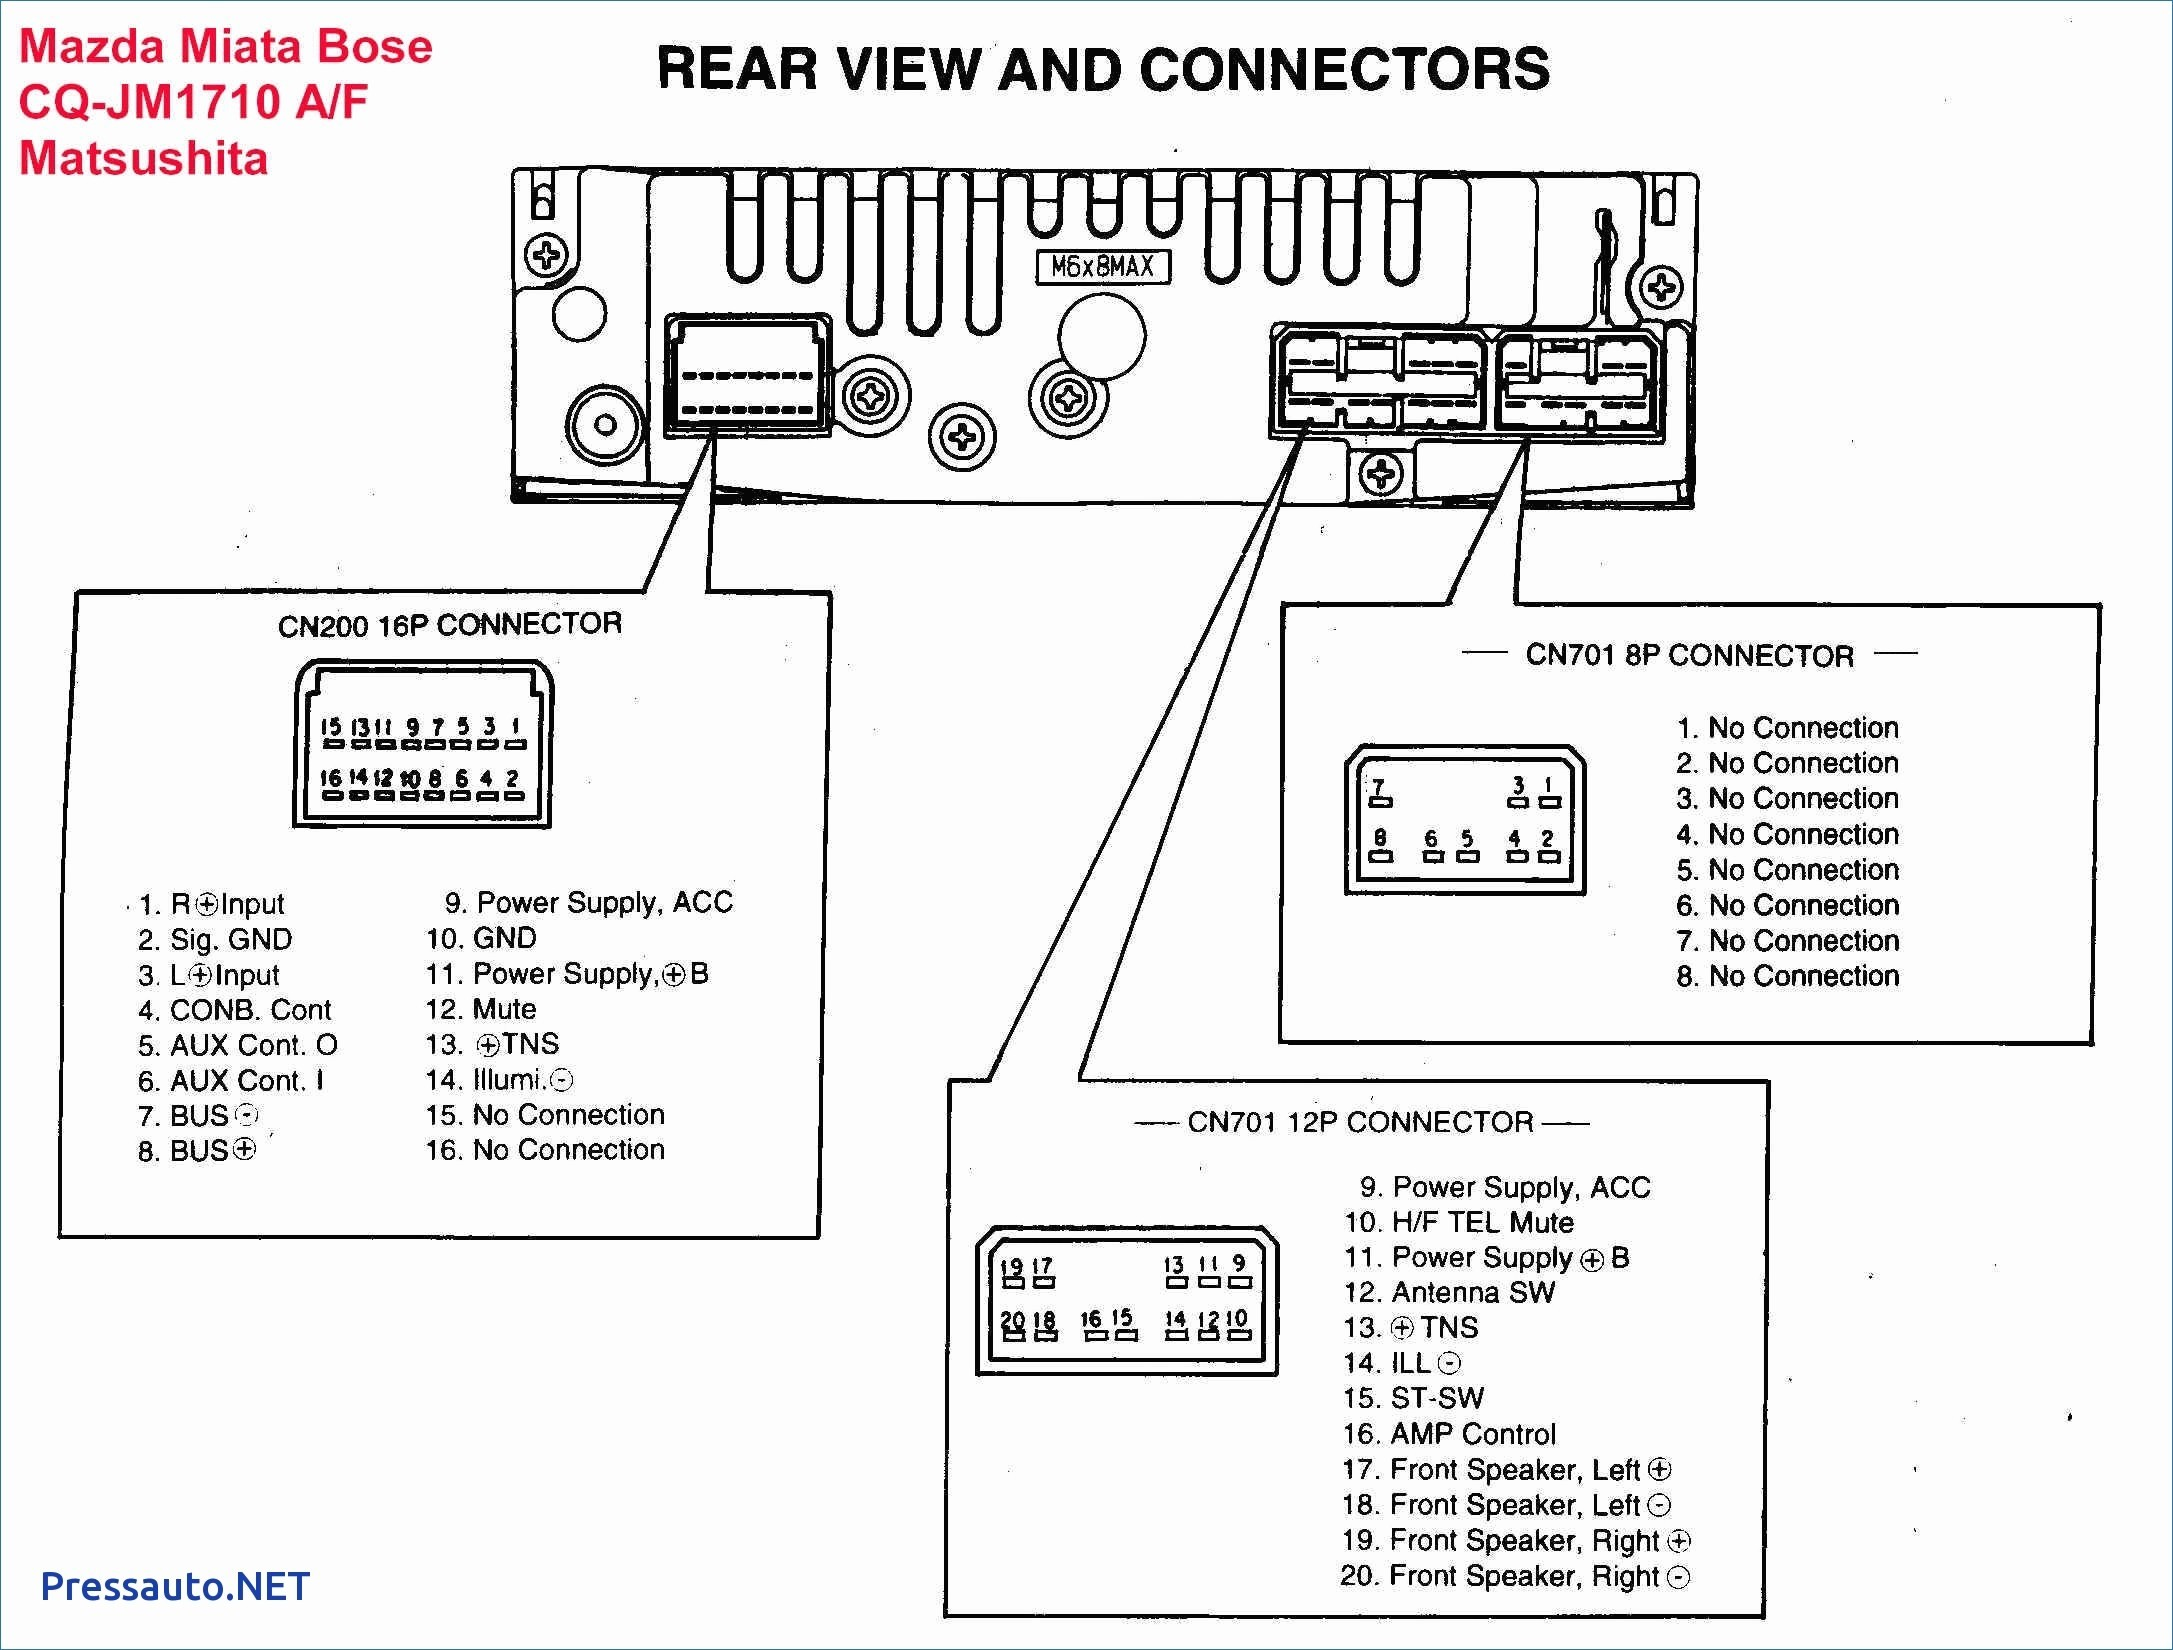 pyramid radio wiring diagram free download wiring diagrams pictures rh sellfie co